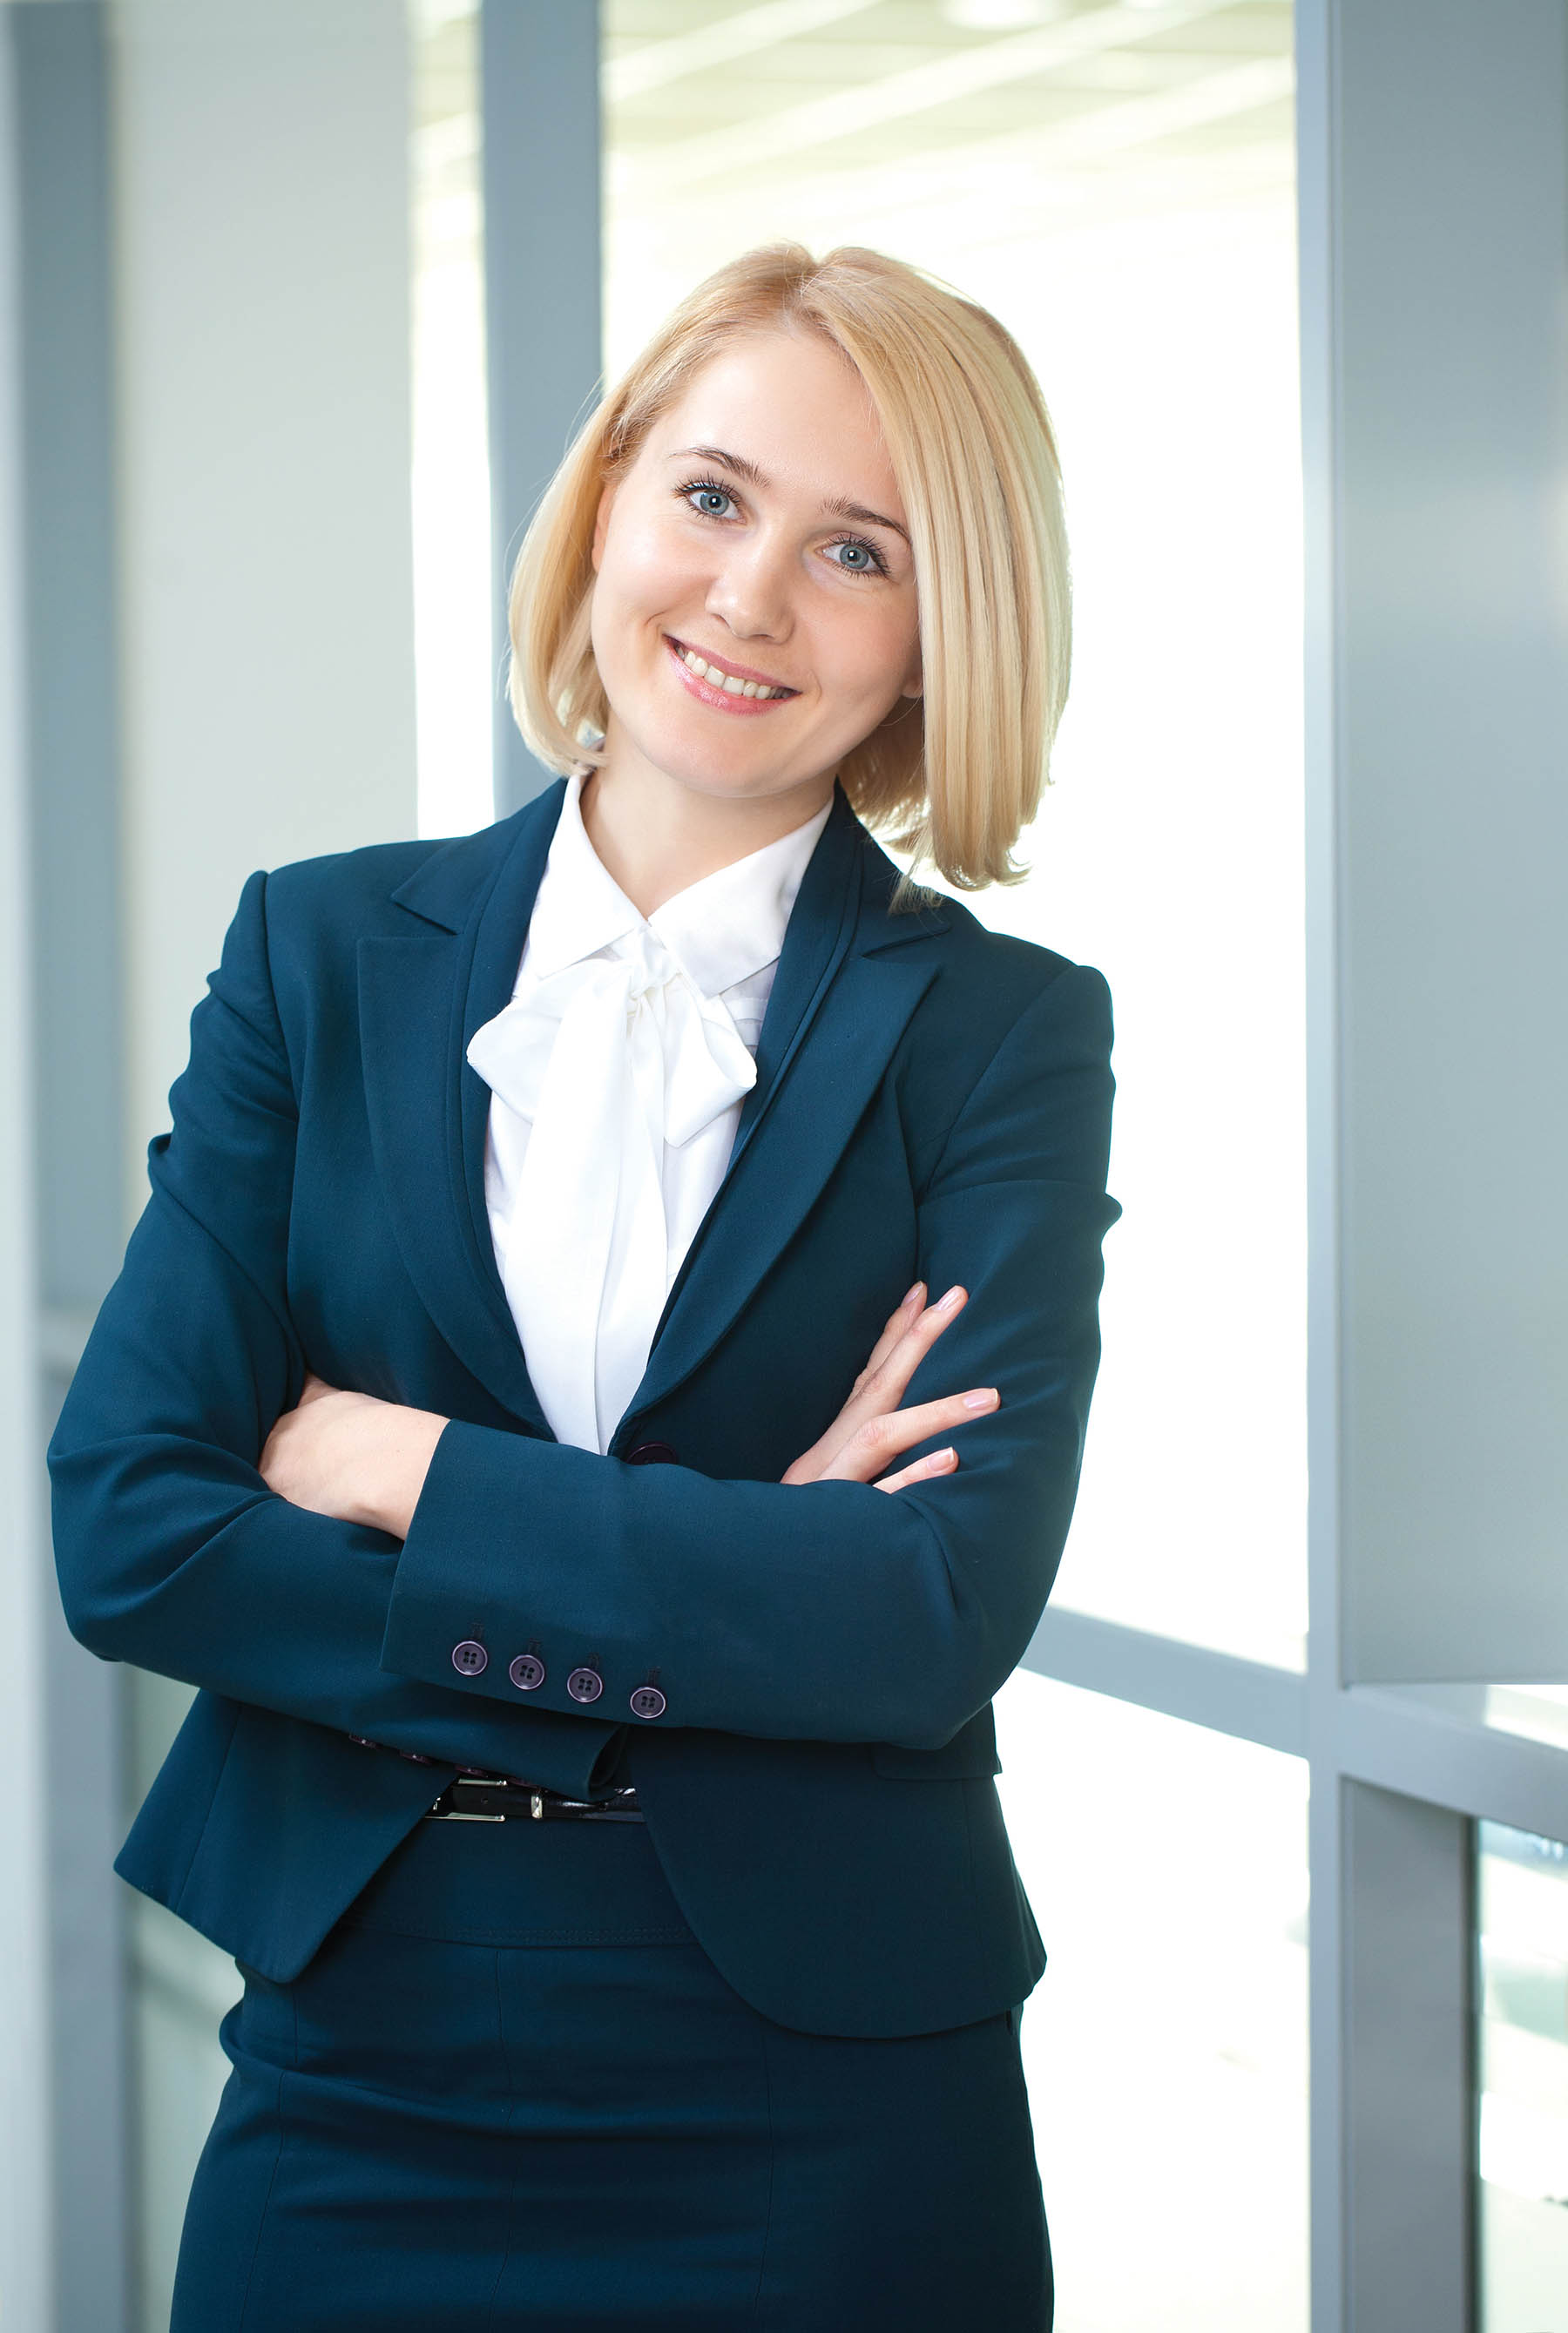 Female banker in suit